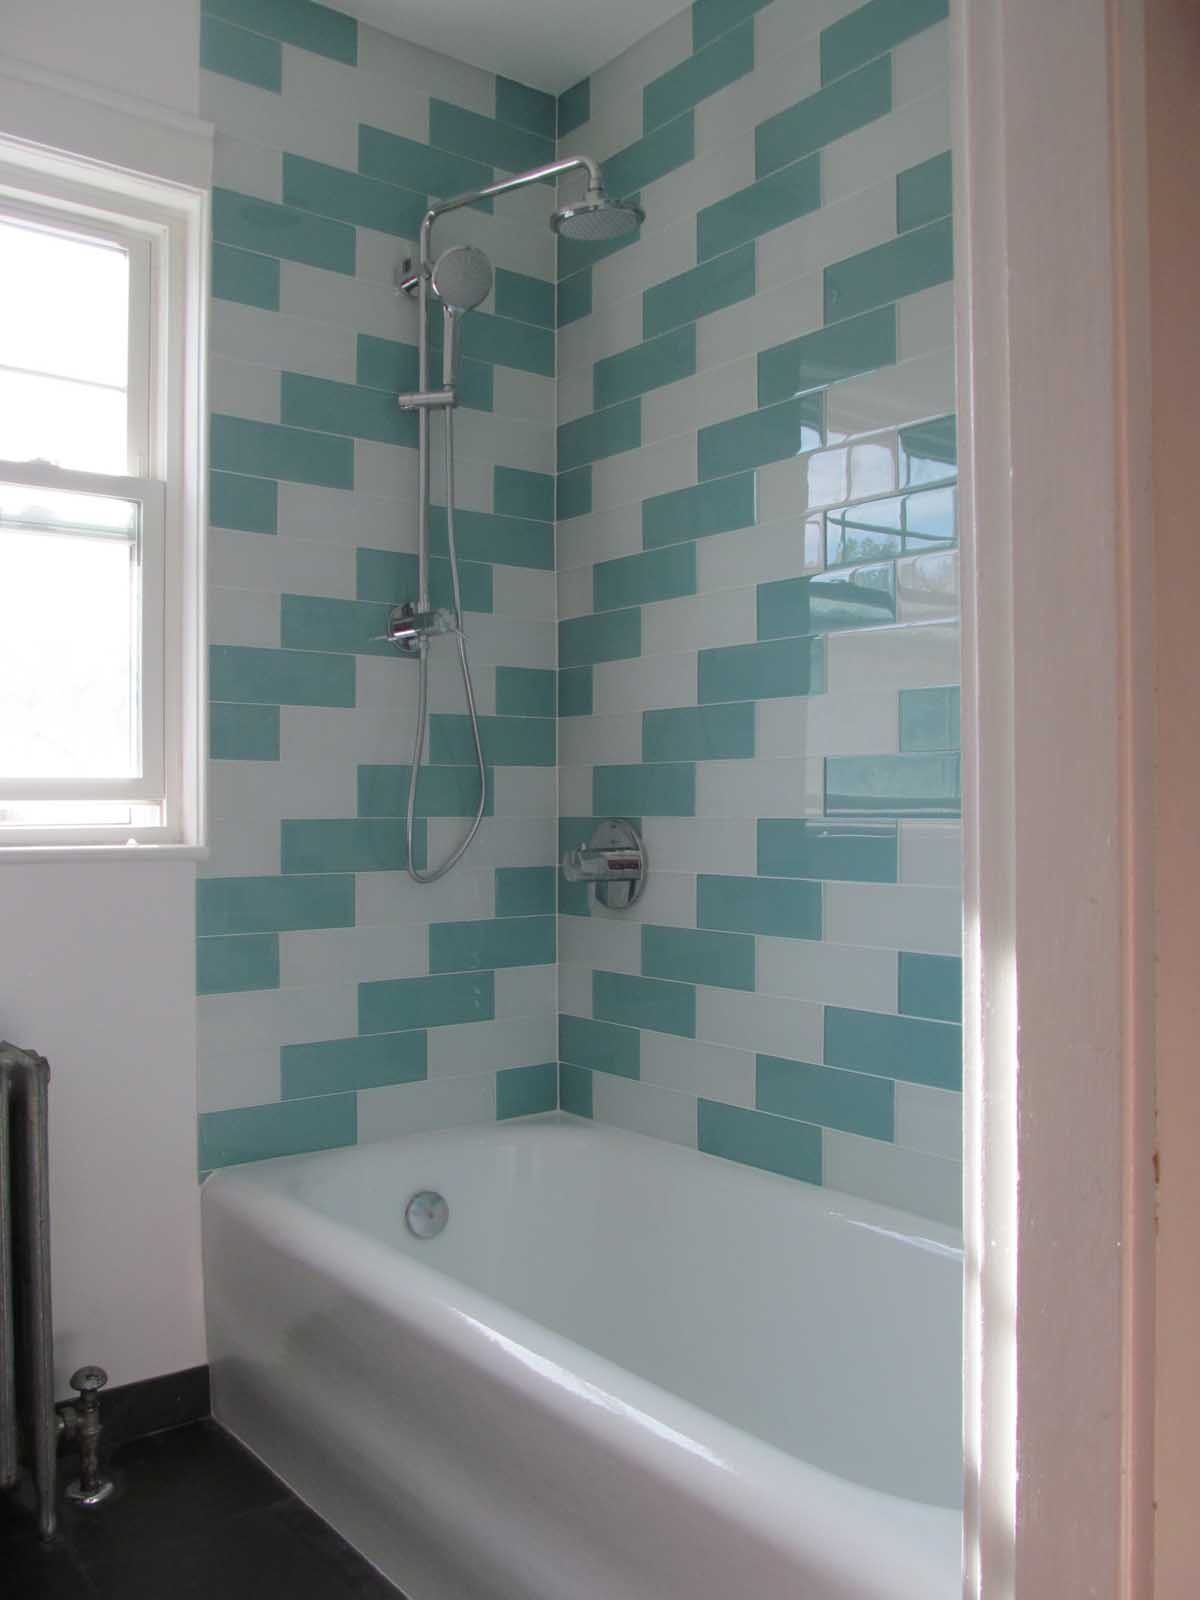 Herringbone Tile Surround in Remodeled Tub - Shower Walls at Summit Ave. Brookline